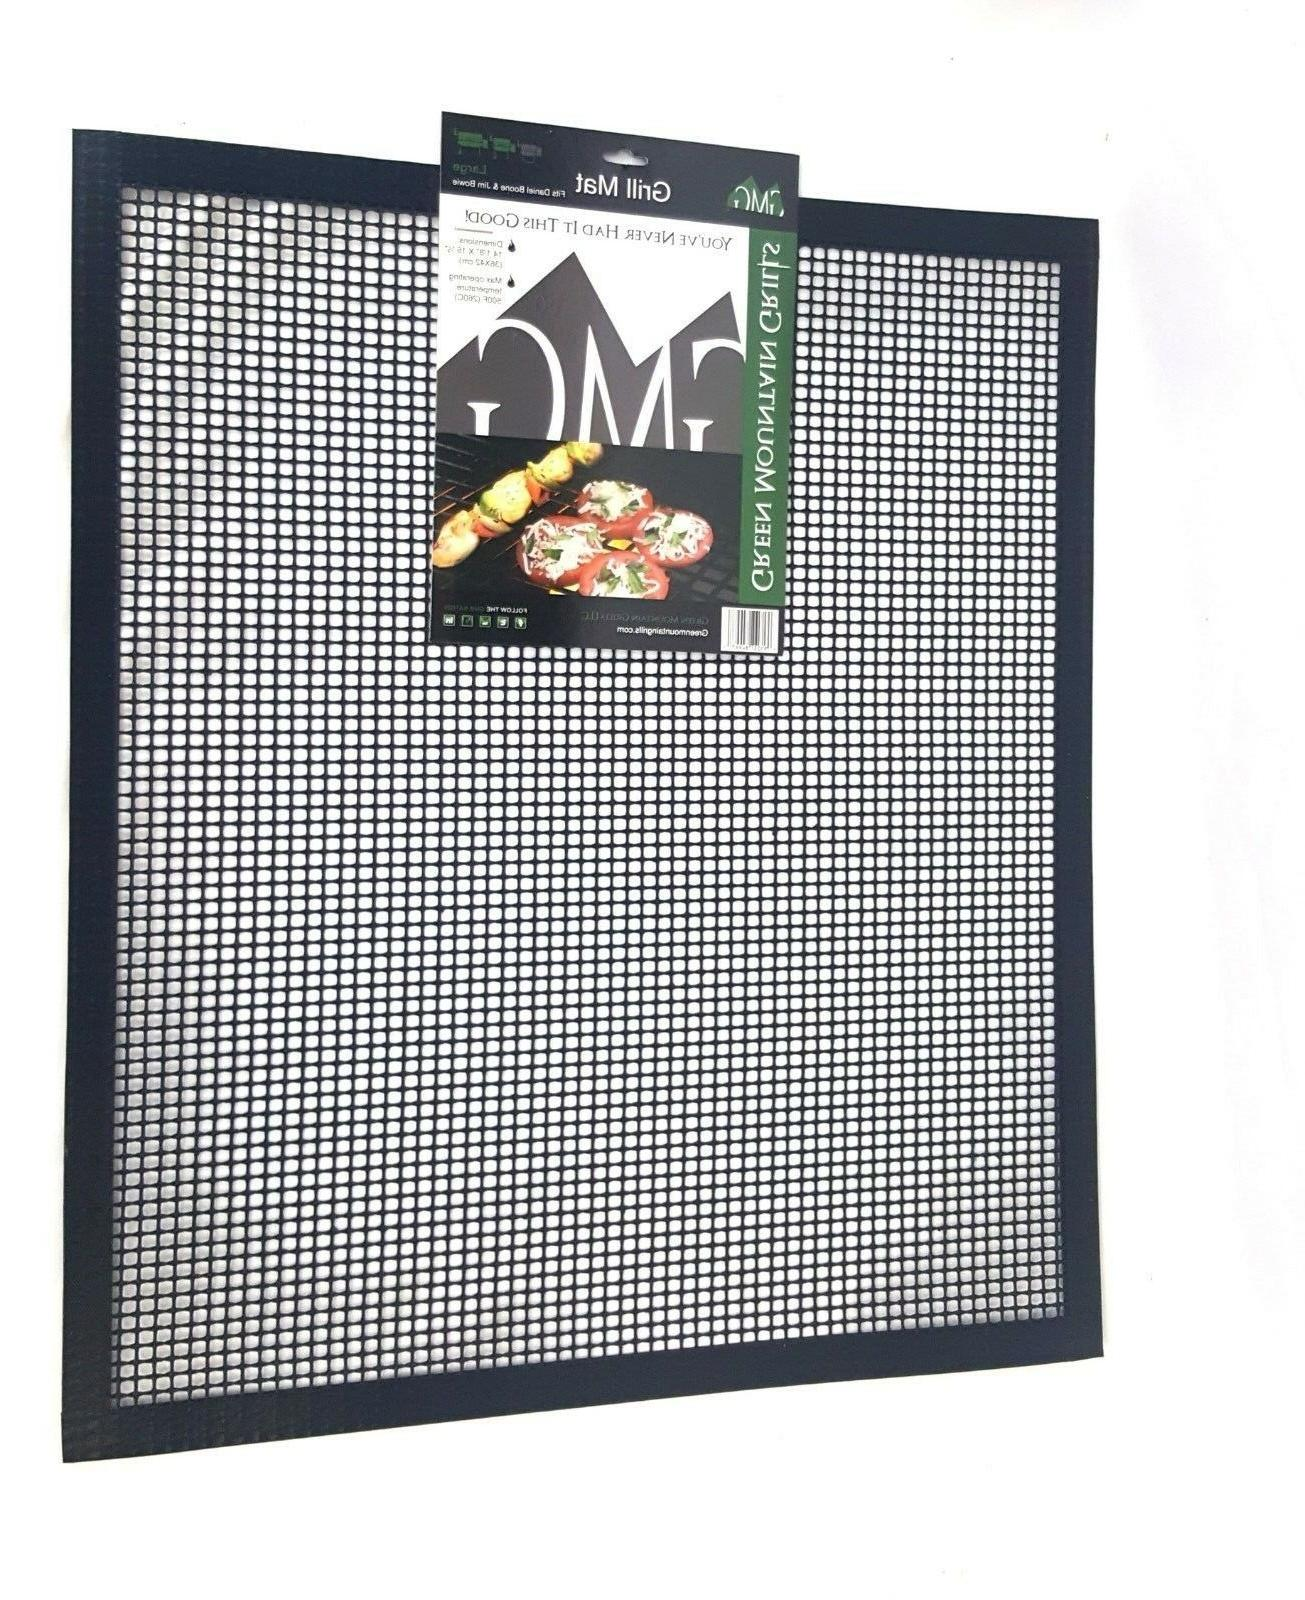 GMG GMG-4018 Large Grilling Mat, 14 1/8 x 16 1/2 inches